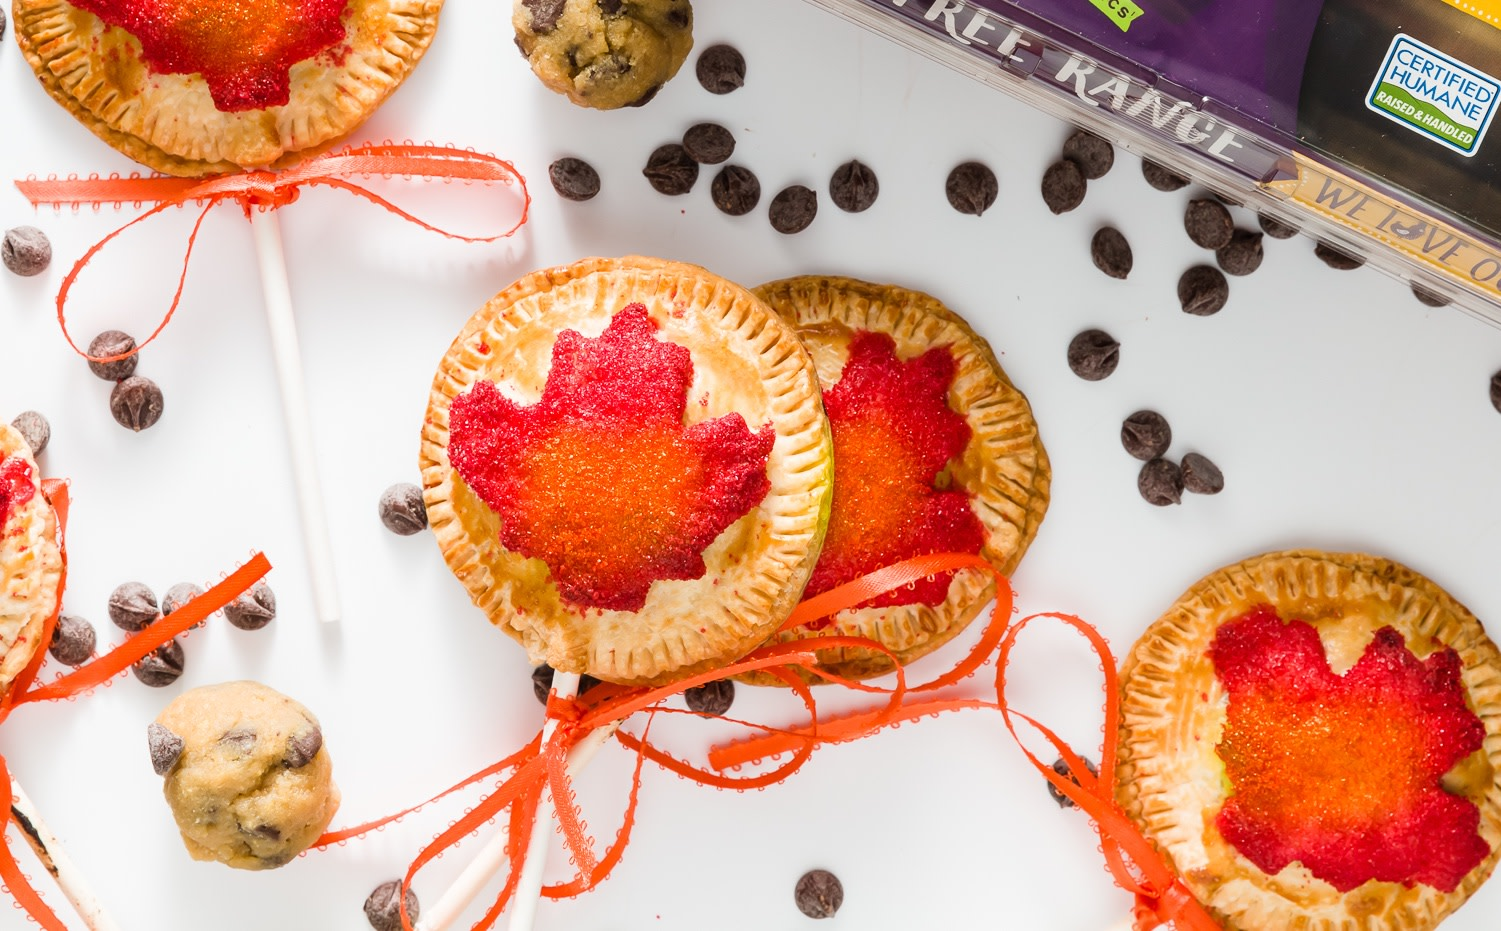 Fun and festive pie pops made with flaky pie crust stuffed with chewy chocolate chip cookie dough. Each pie pop is decorated with a red pie crust leaf. | nelliesfreerange.com